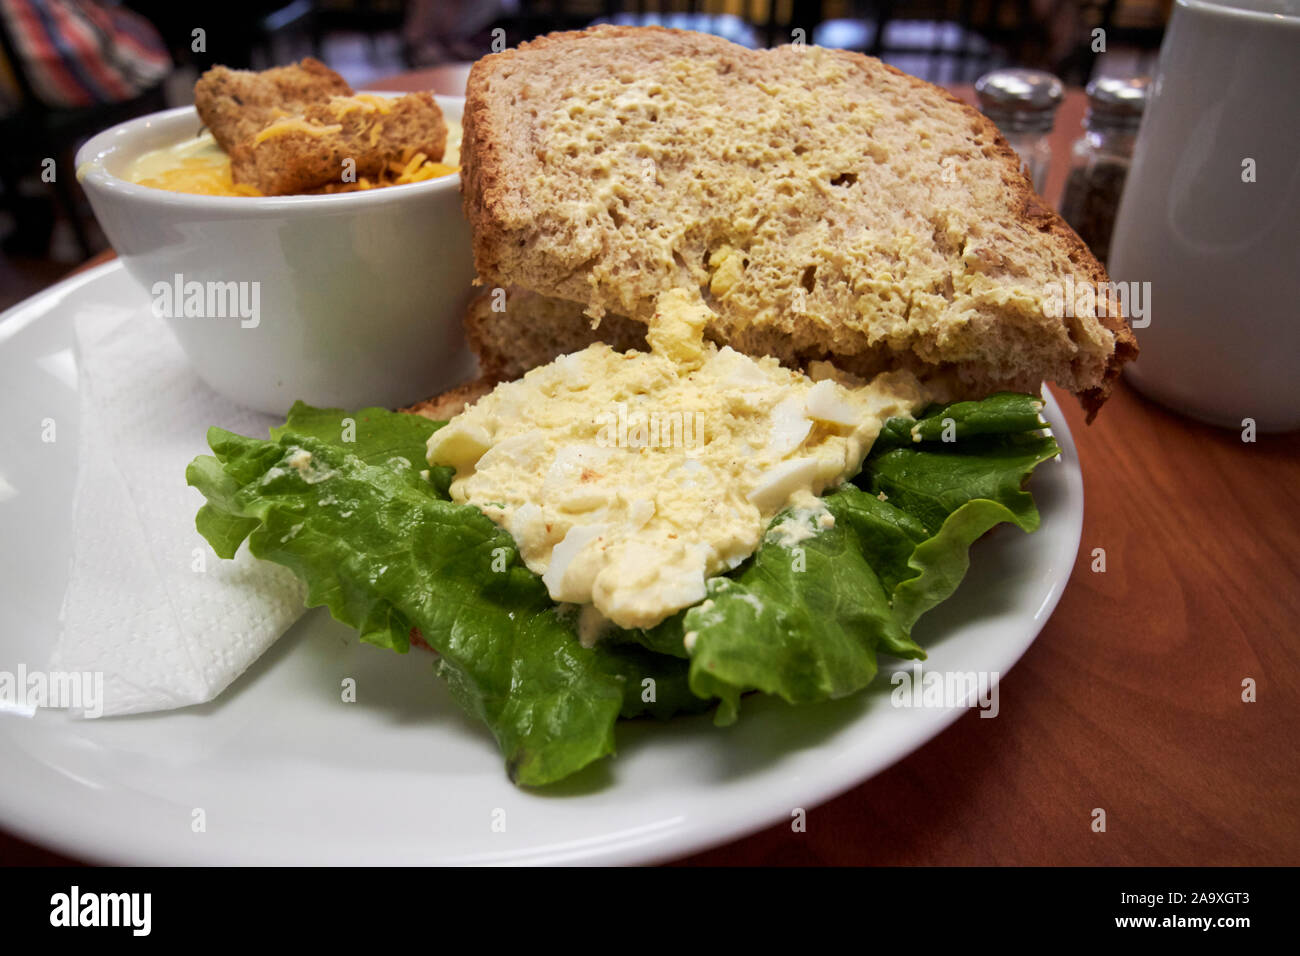 egg salad sandwich and soup in a cafe in the usa Stock Photo